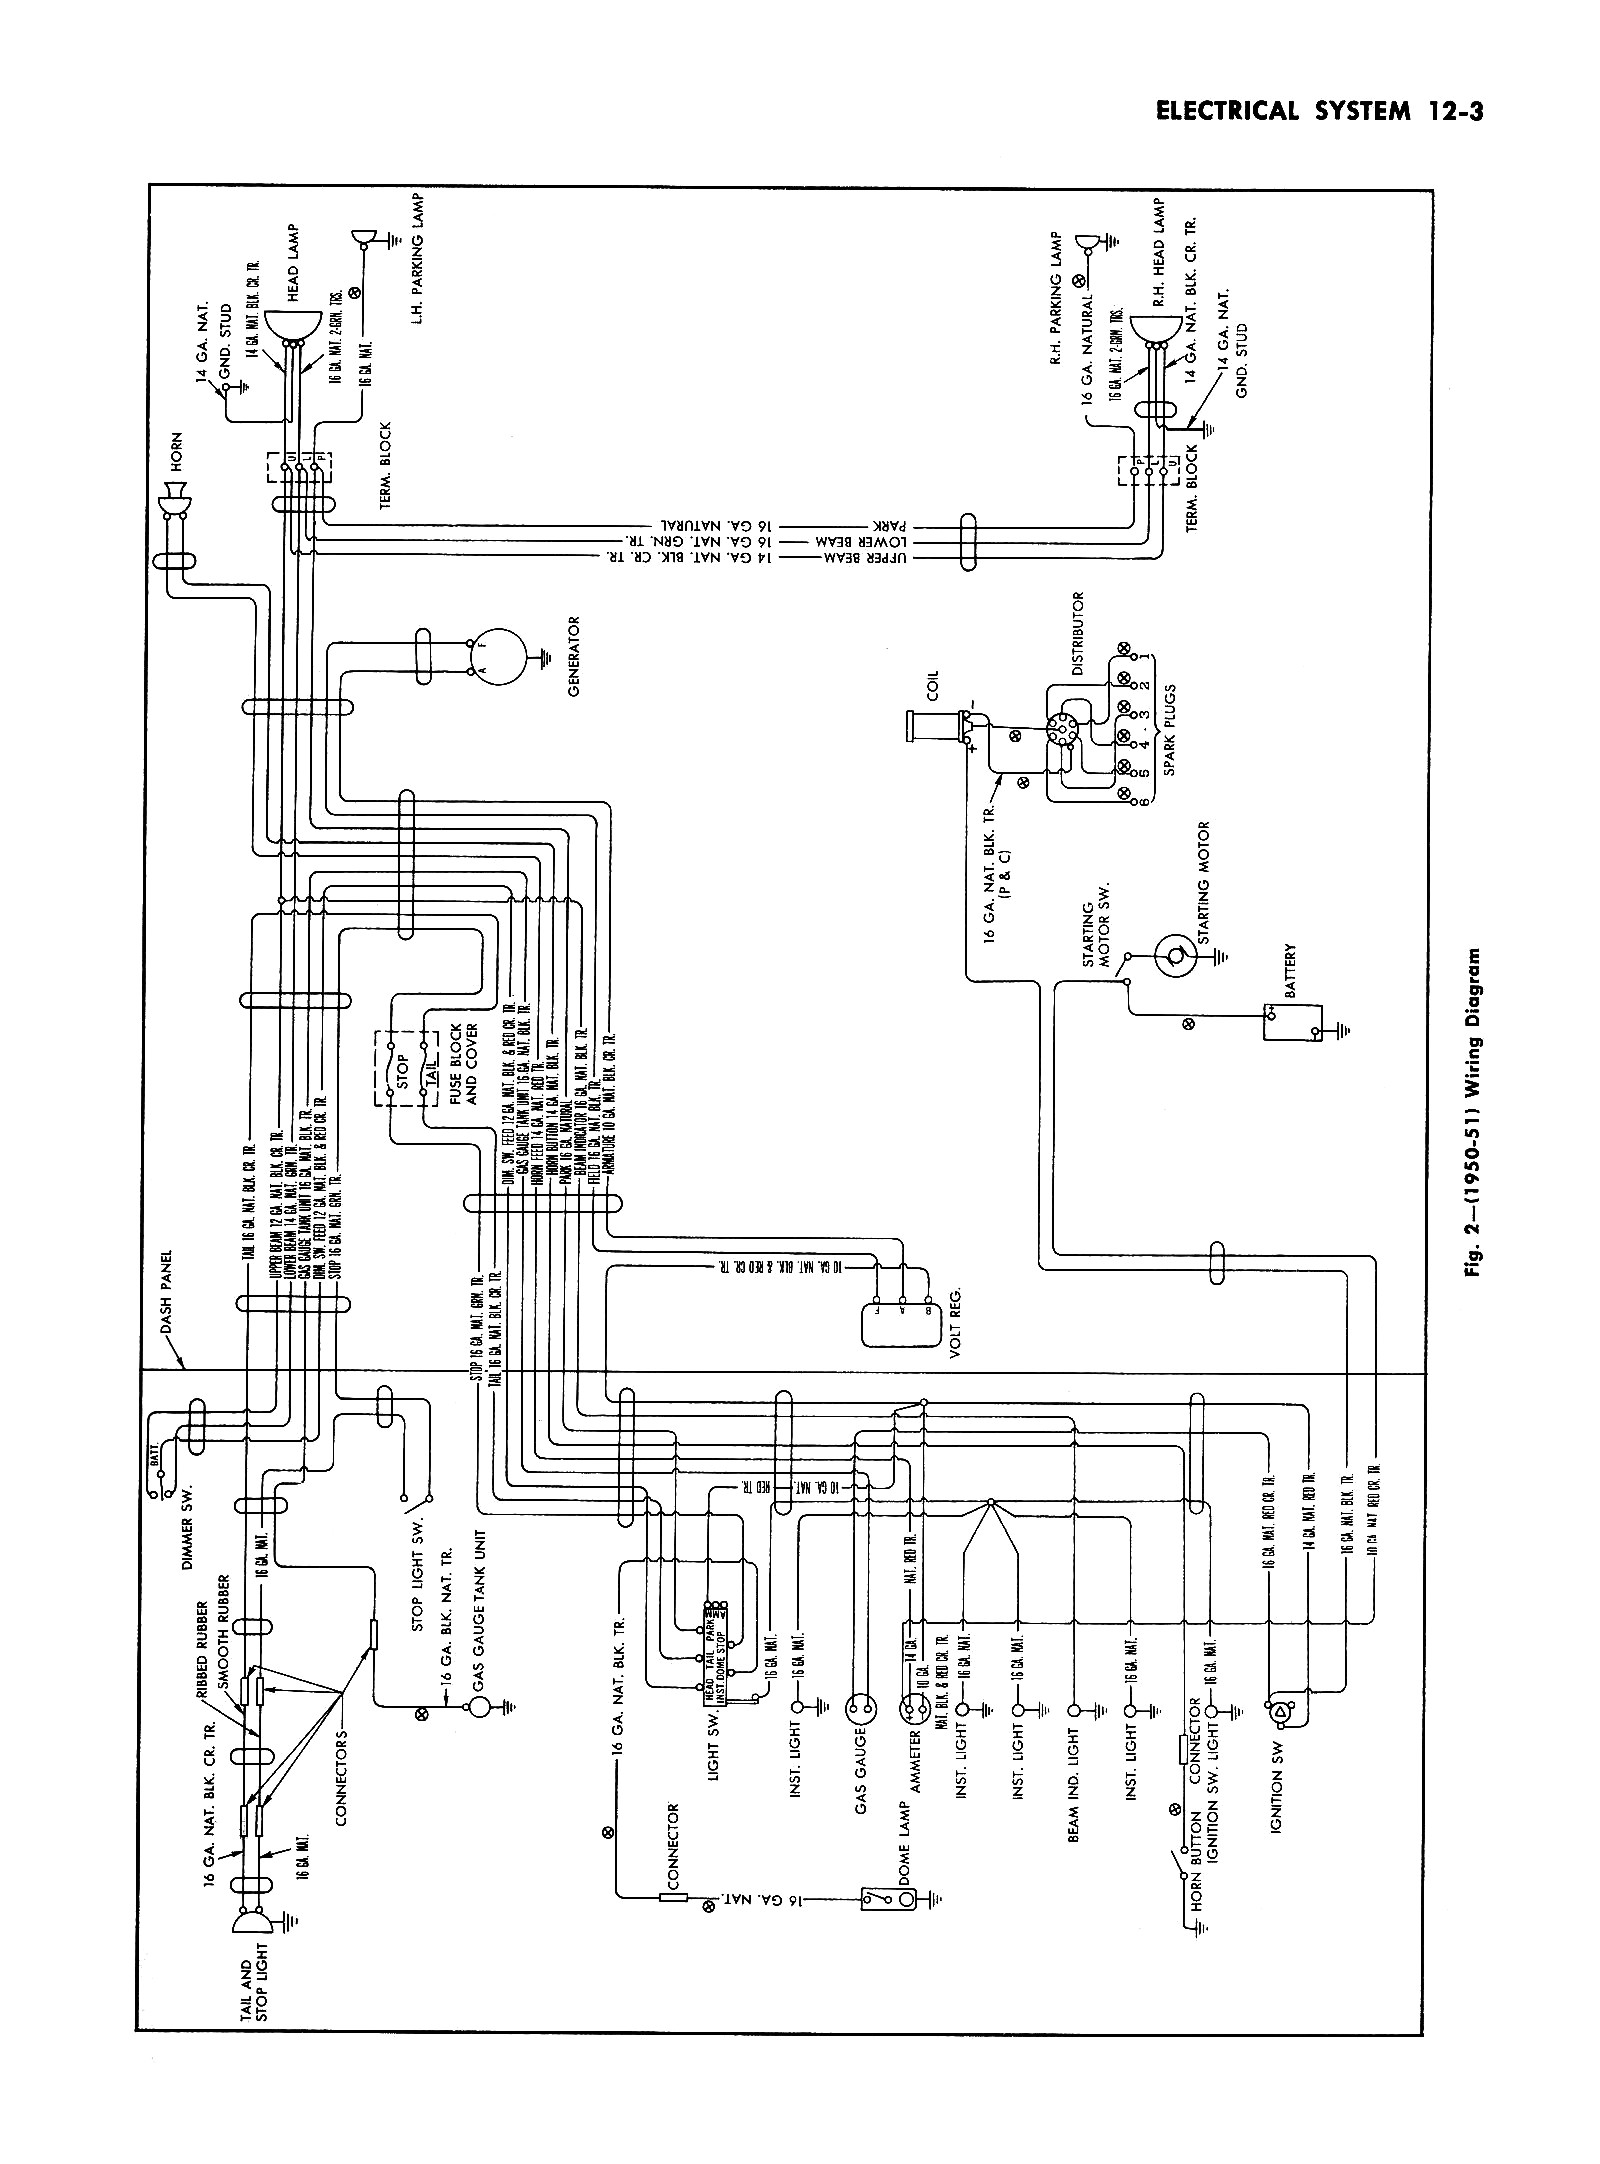 1950s Light Switch Wiring Diagram Worksheet And For Multiple Switched Outlets Chevy Diagrams Rh Oldcarmanualproject Com Lights Single Pole